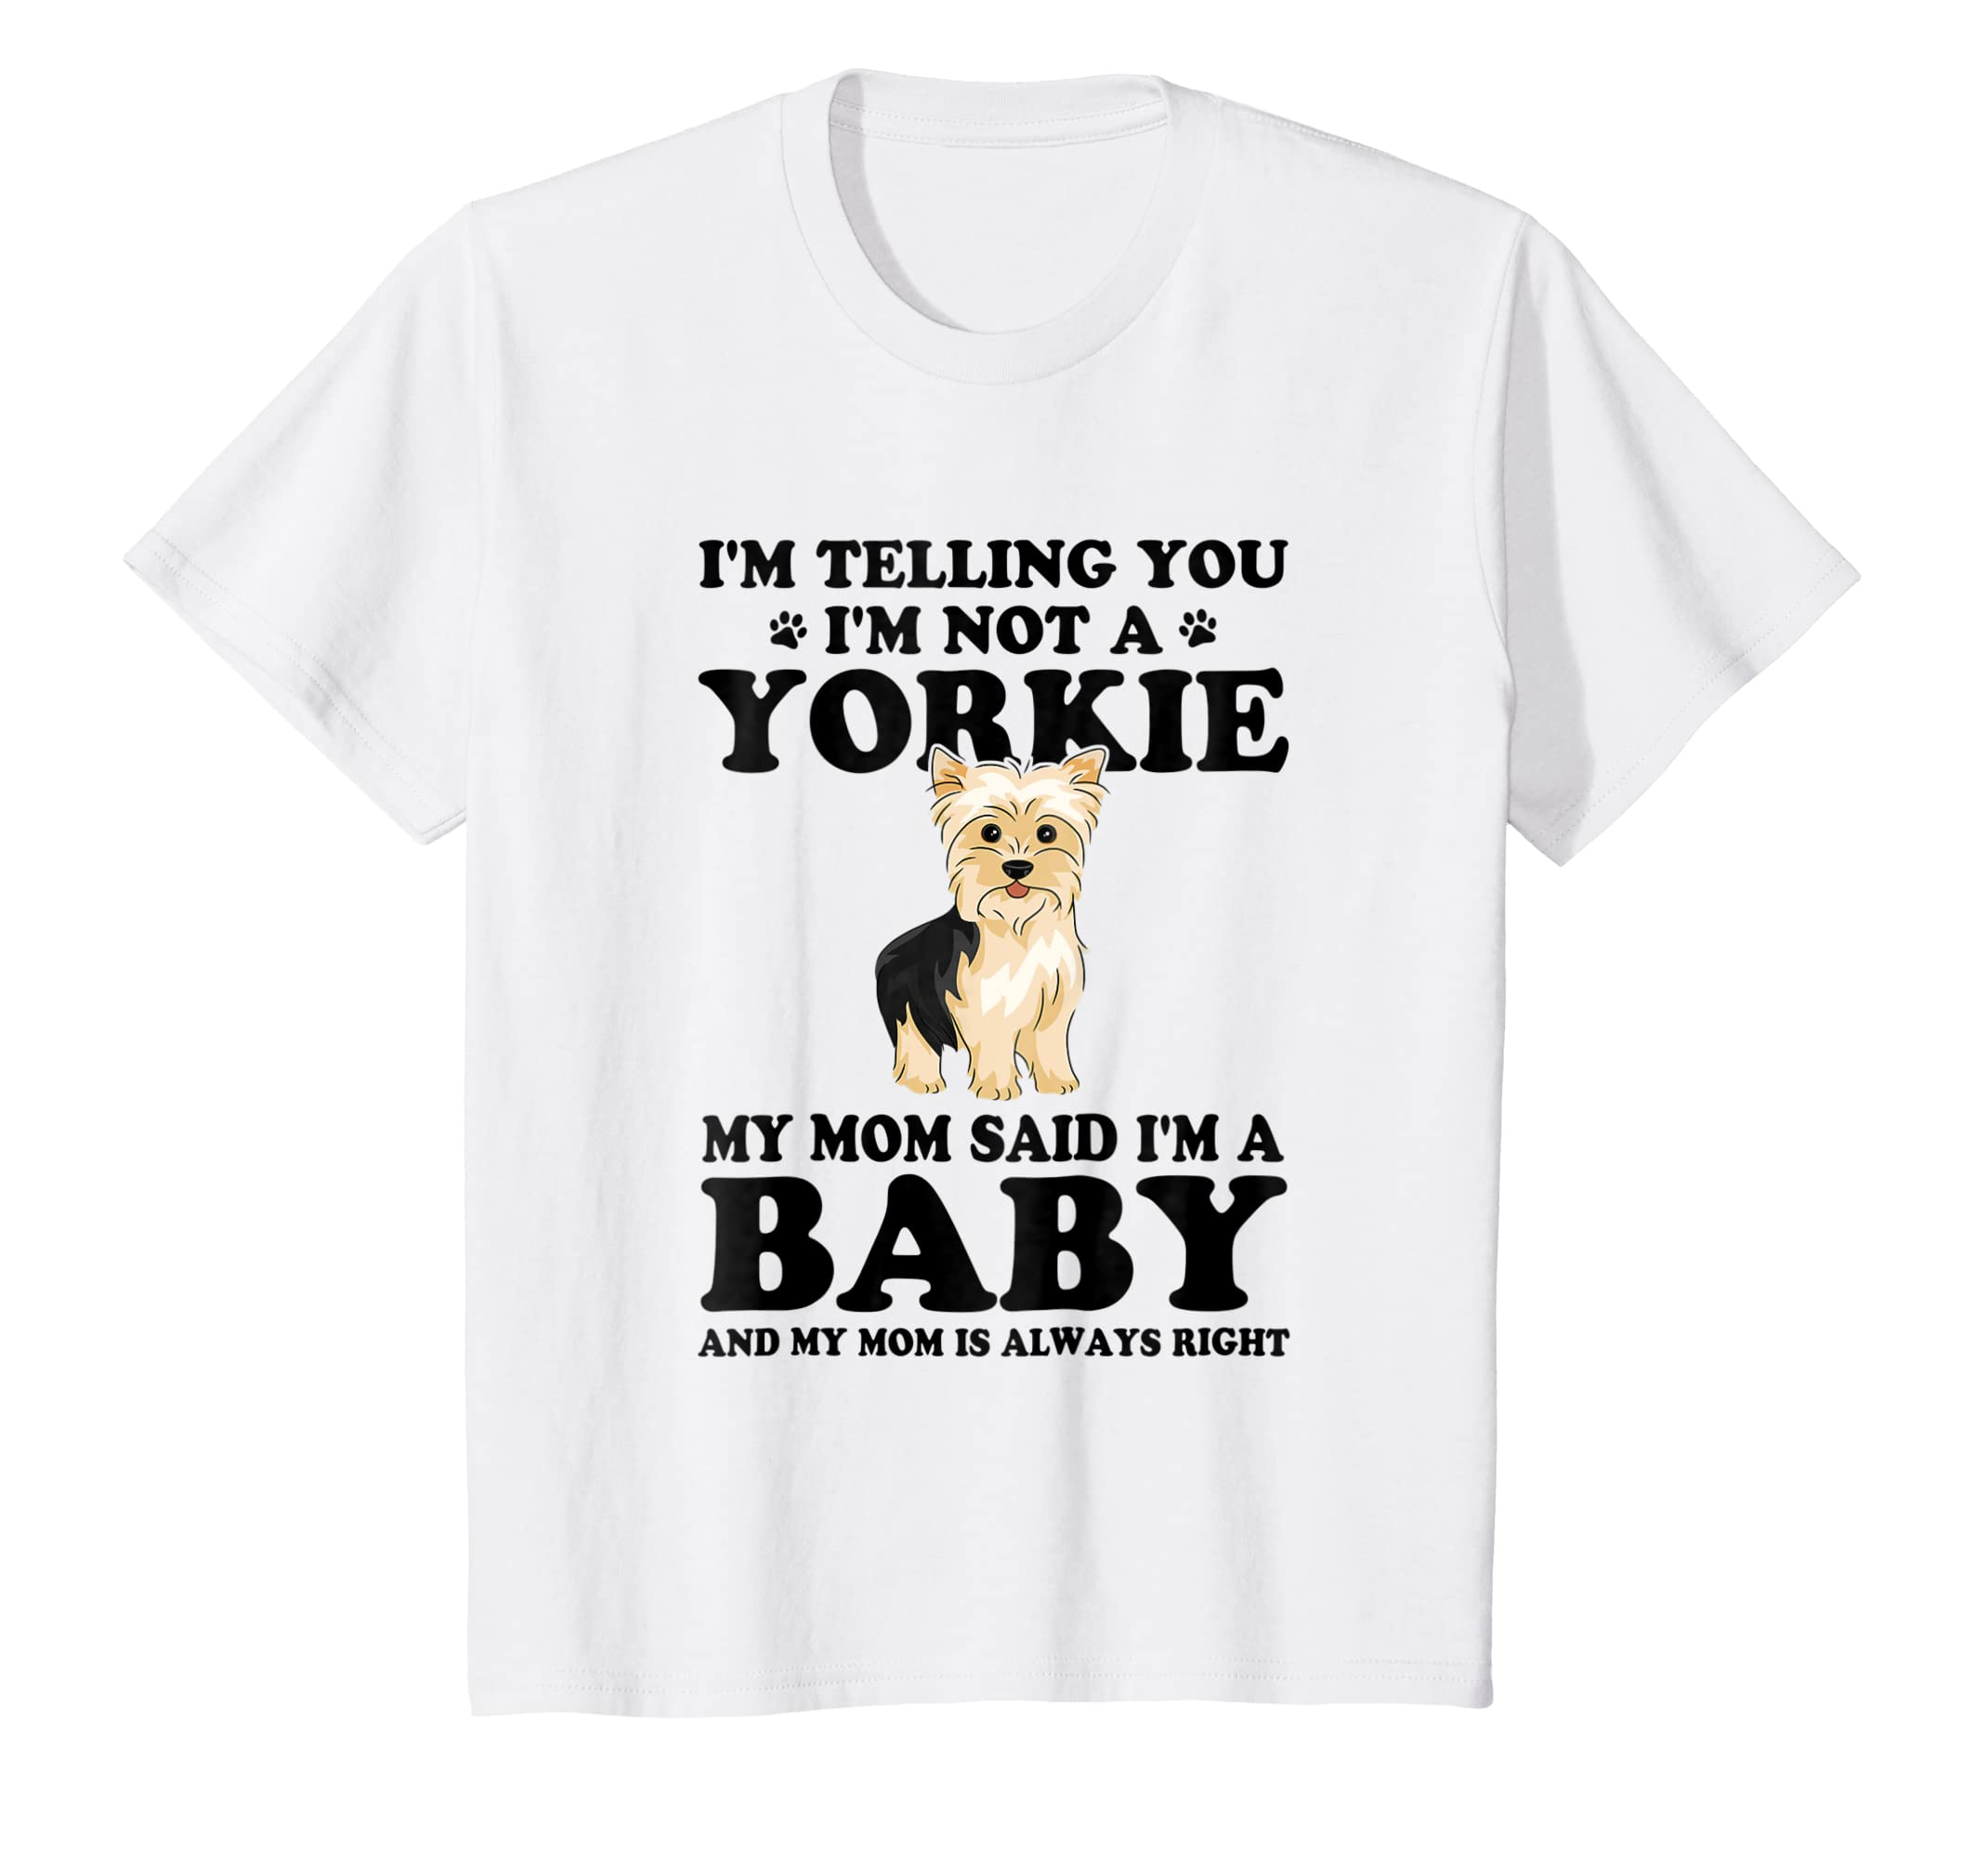 b3e1d38e Amazon.com: I'm Telling You I'm Not a Yorkie my Mom Said T-shirt: Clothing